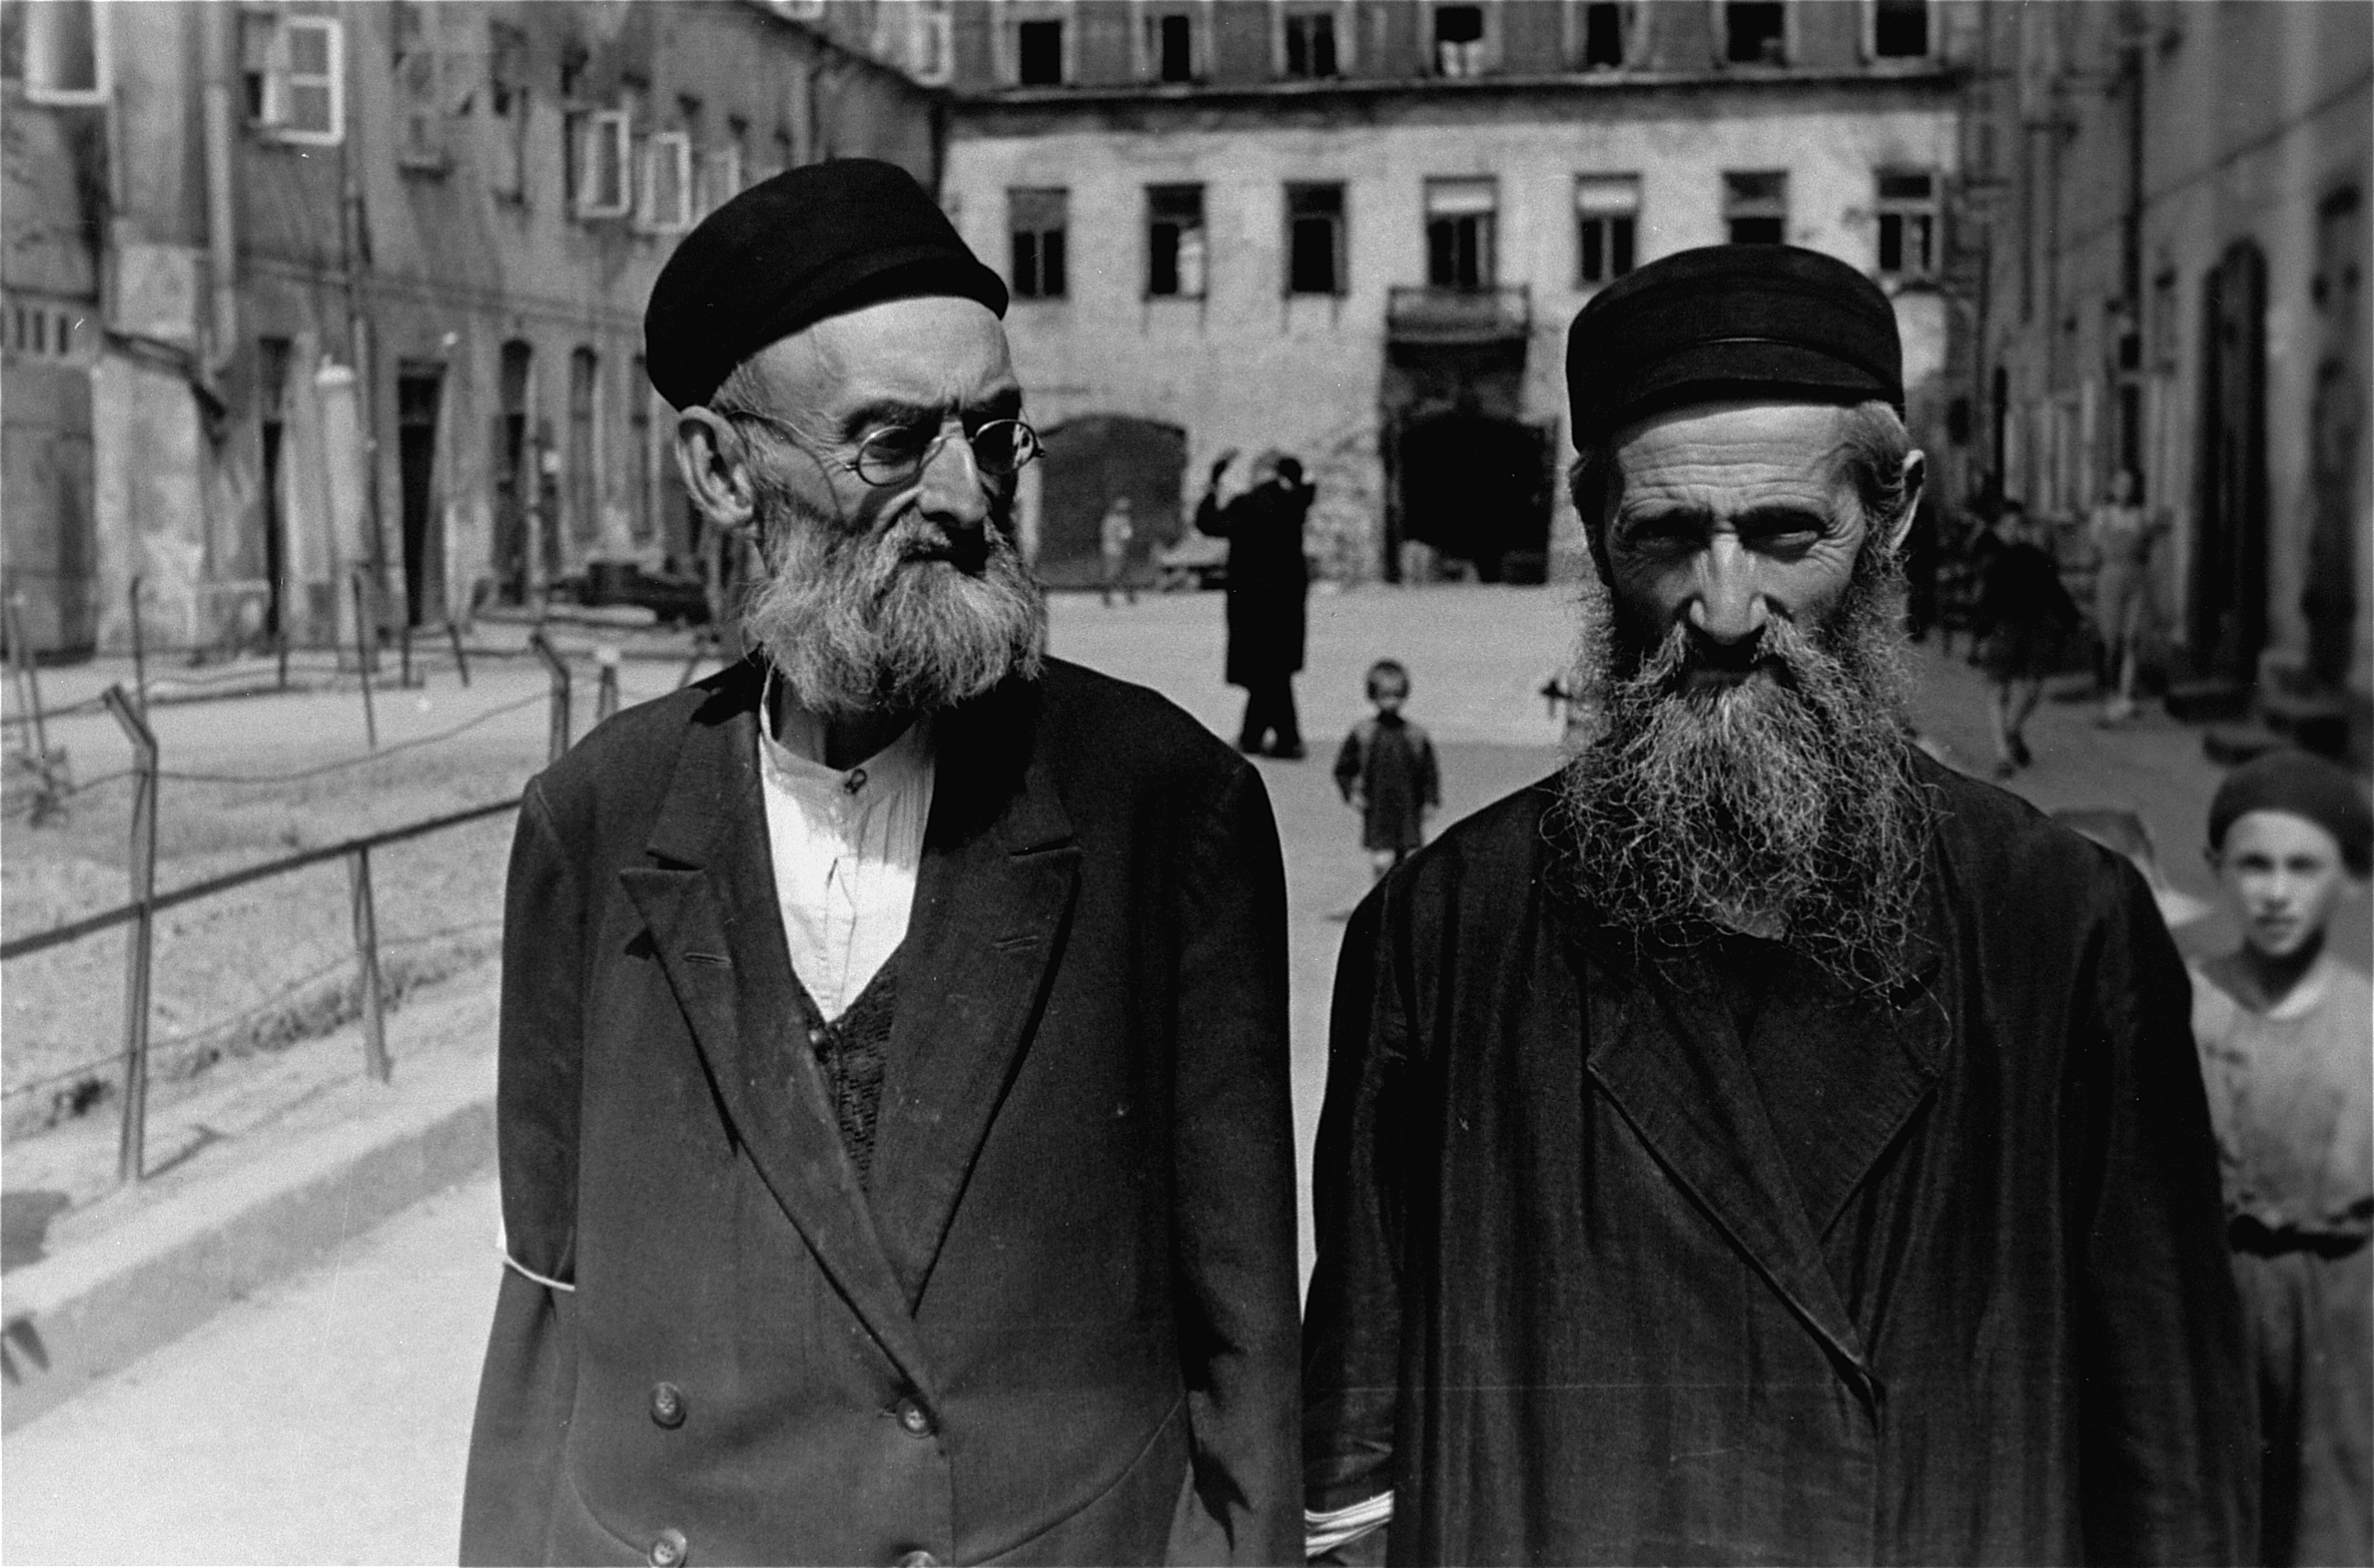 Remembering The Spiritual Heroes Of The Warsaw Ghetto